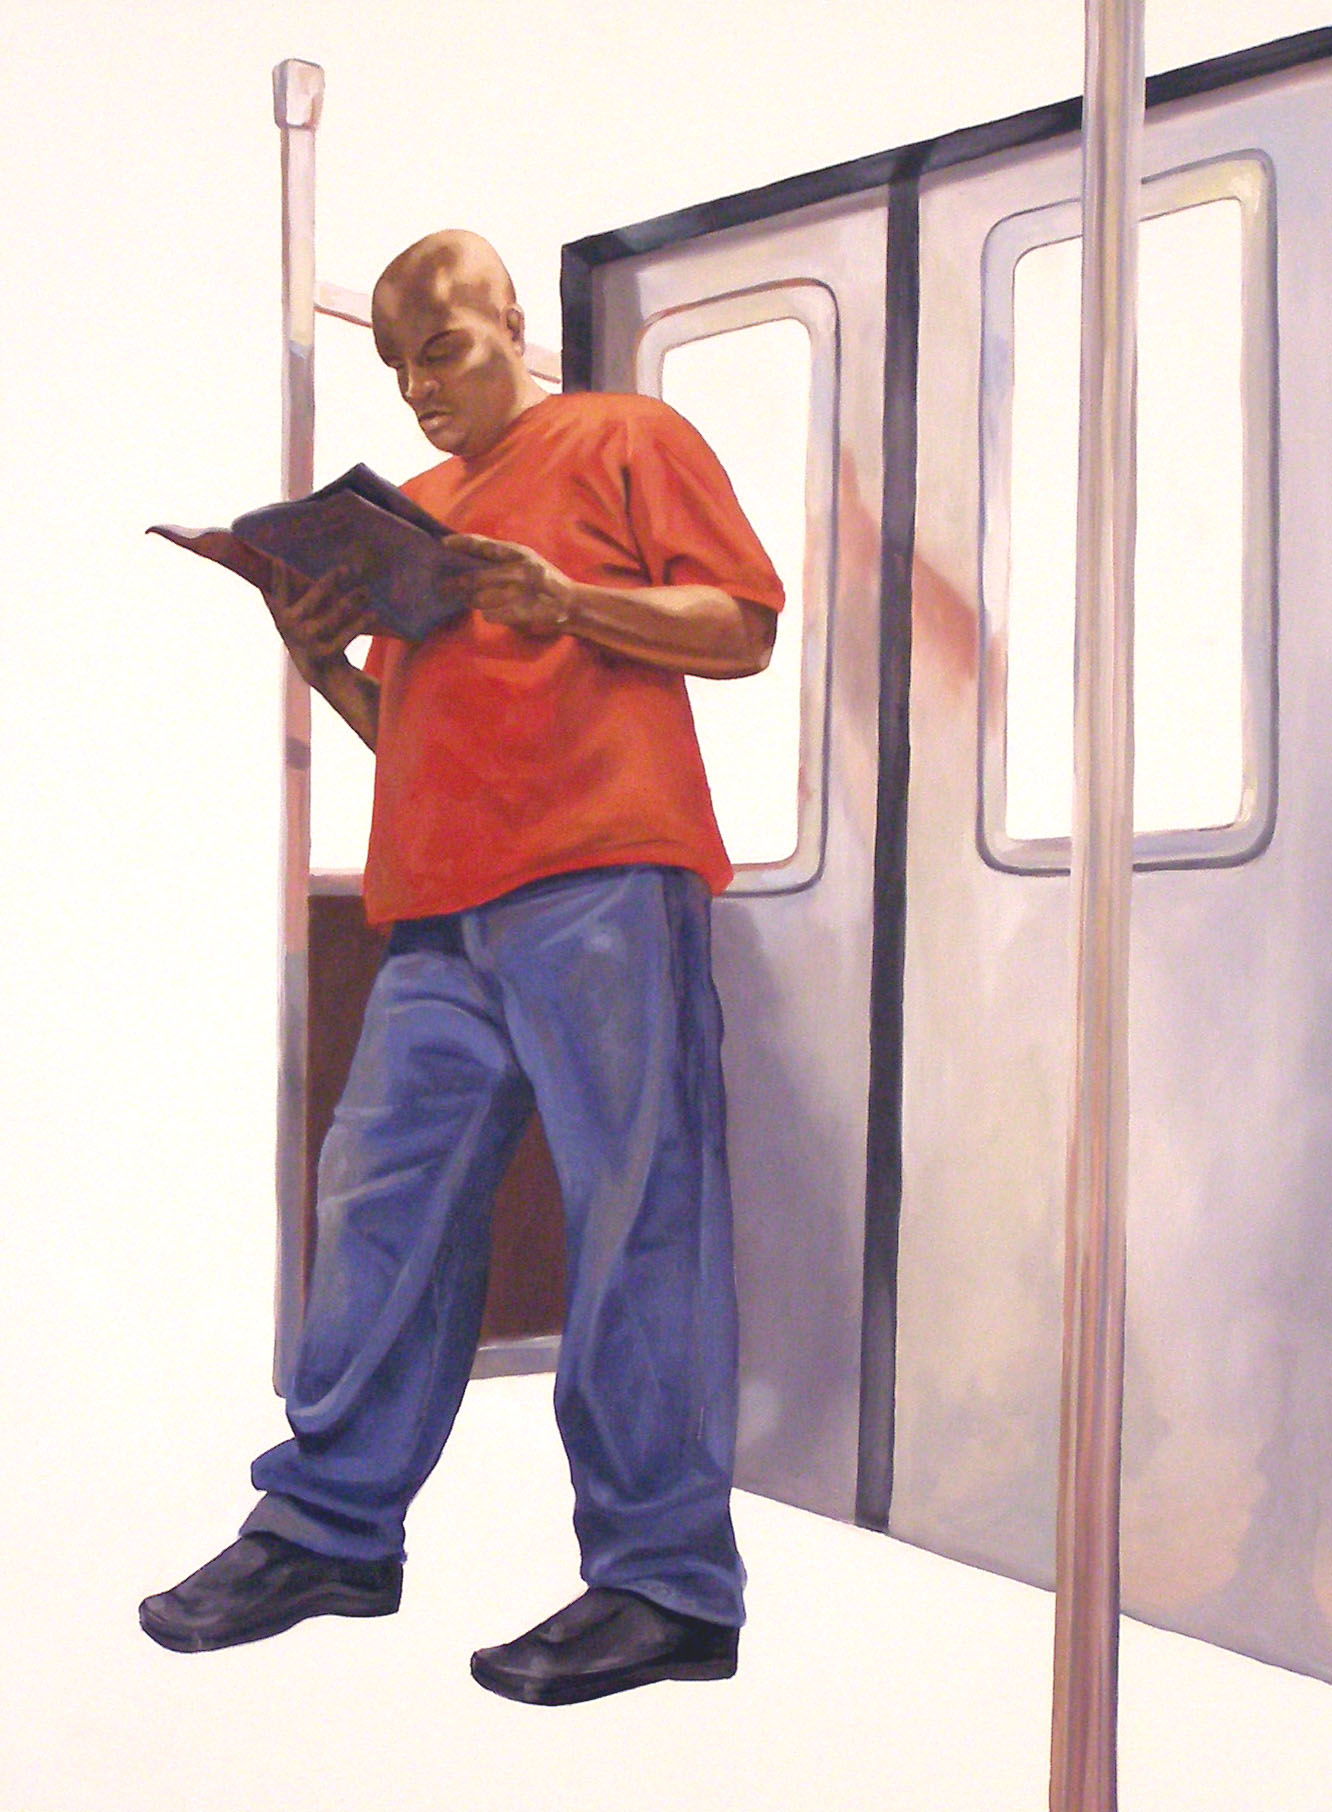 """Alone Together: Man on Subway, 24 """"x 18 """", oil on panel, 2007"""